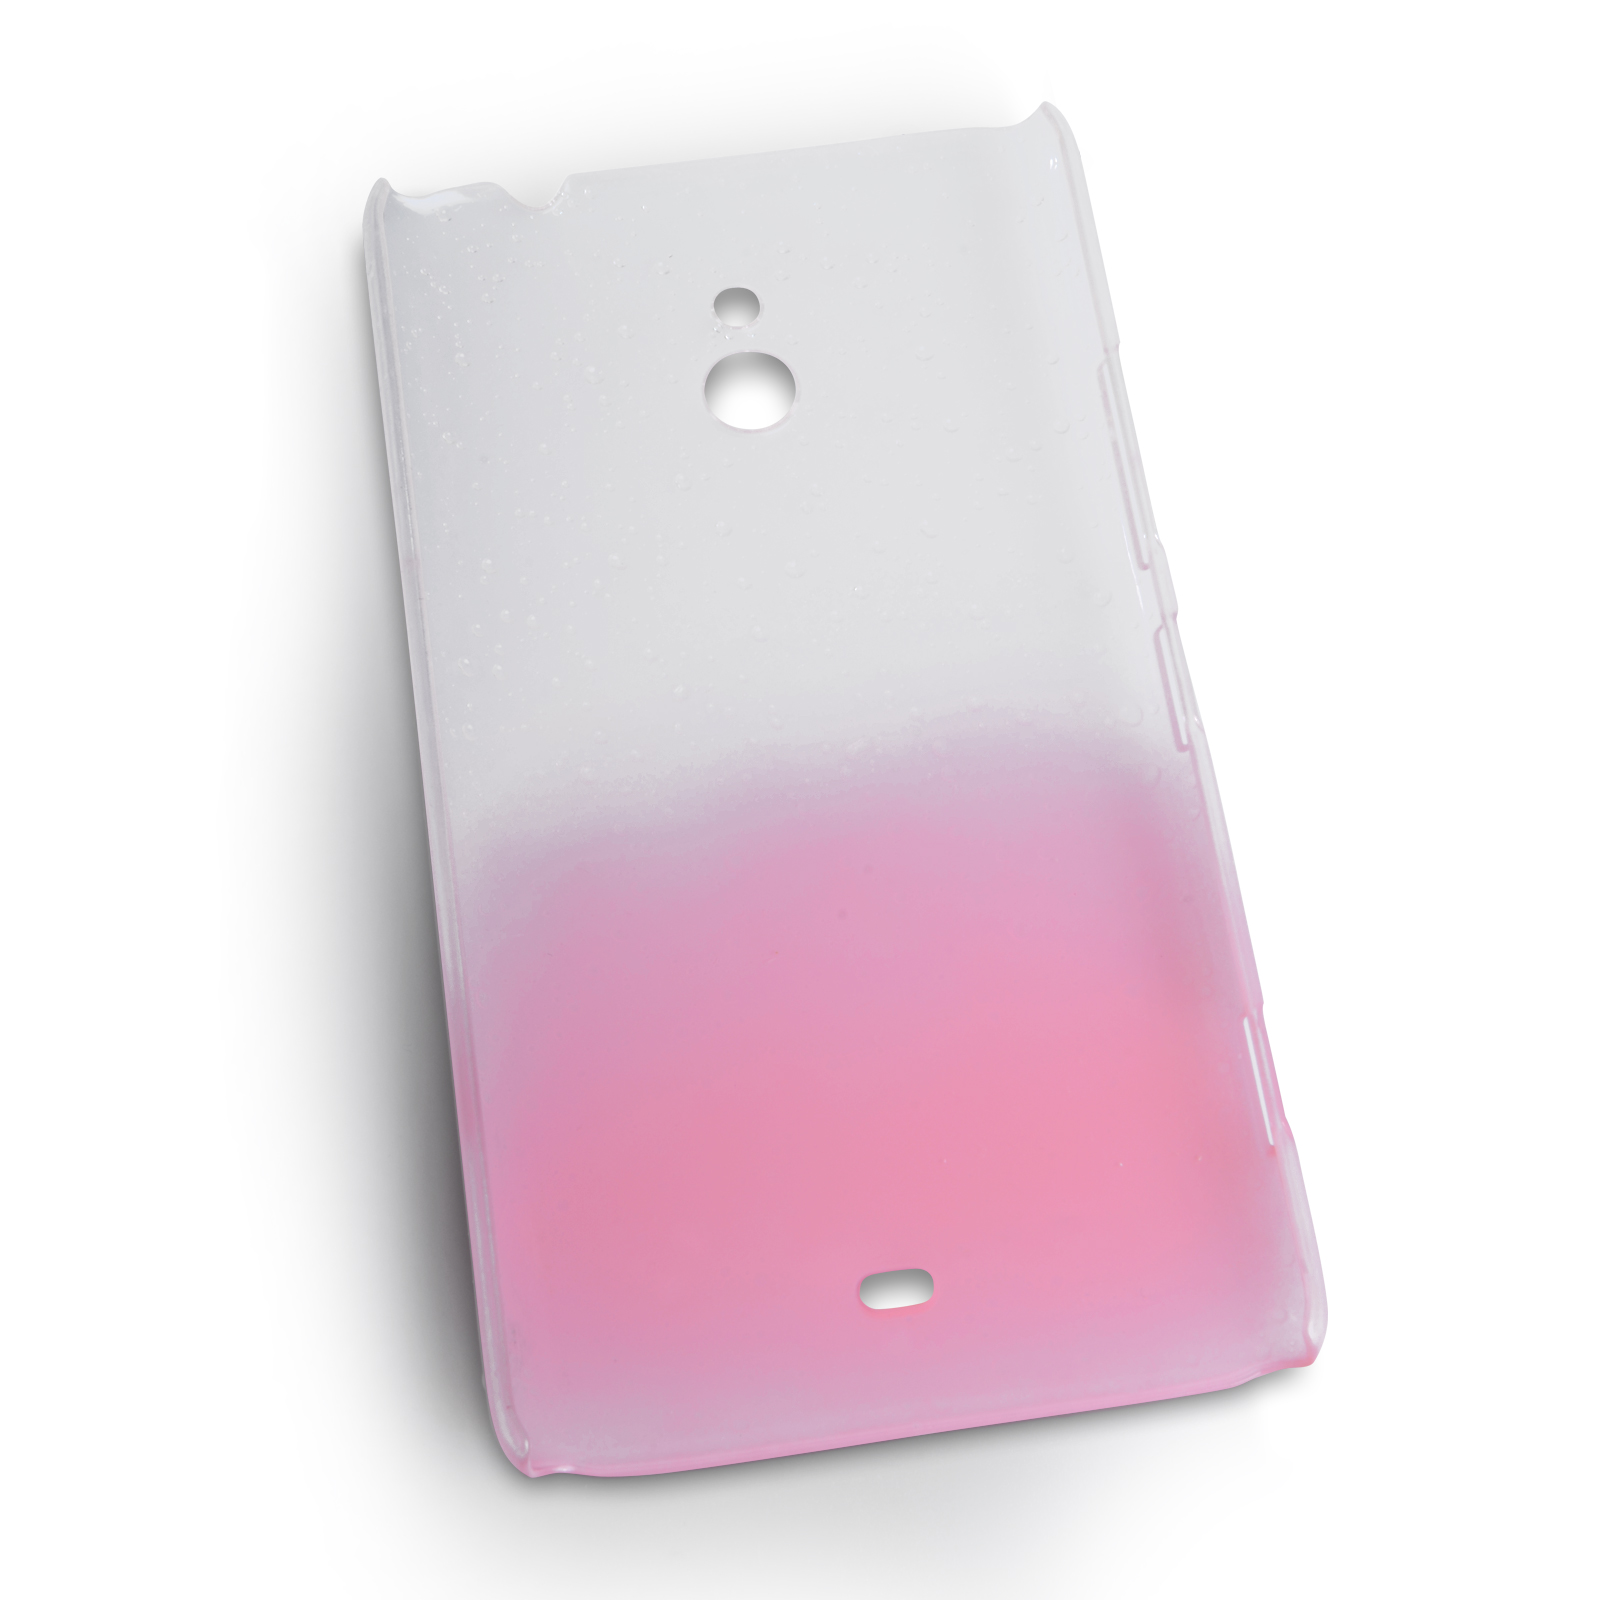 YouSave Nokia Lumia 1320 Raindrop Hard Case - Baby Pink-Clear